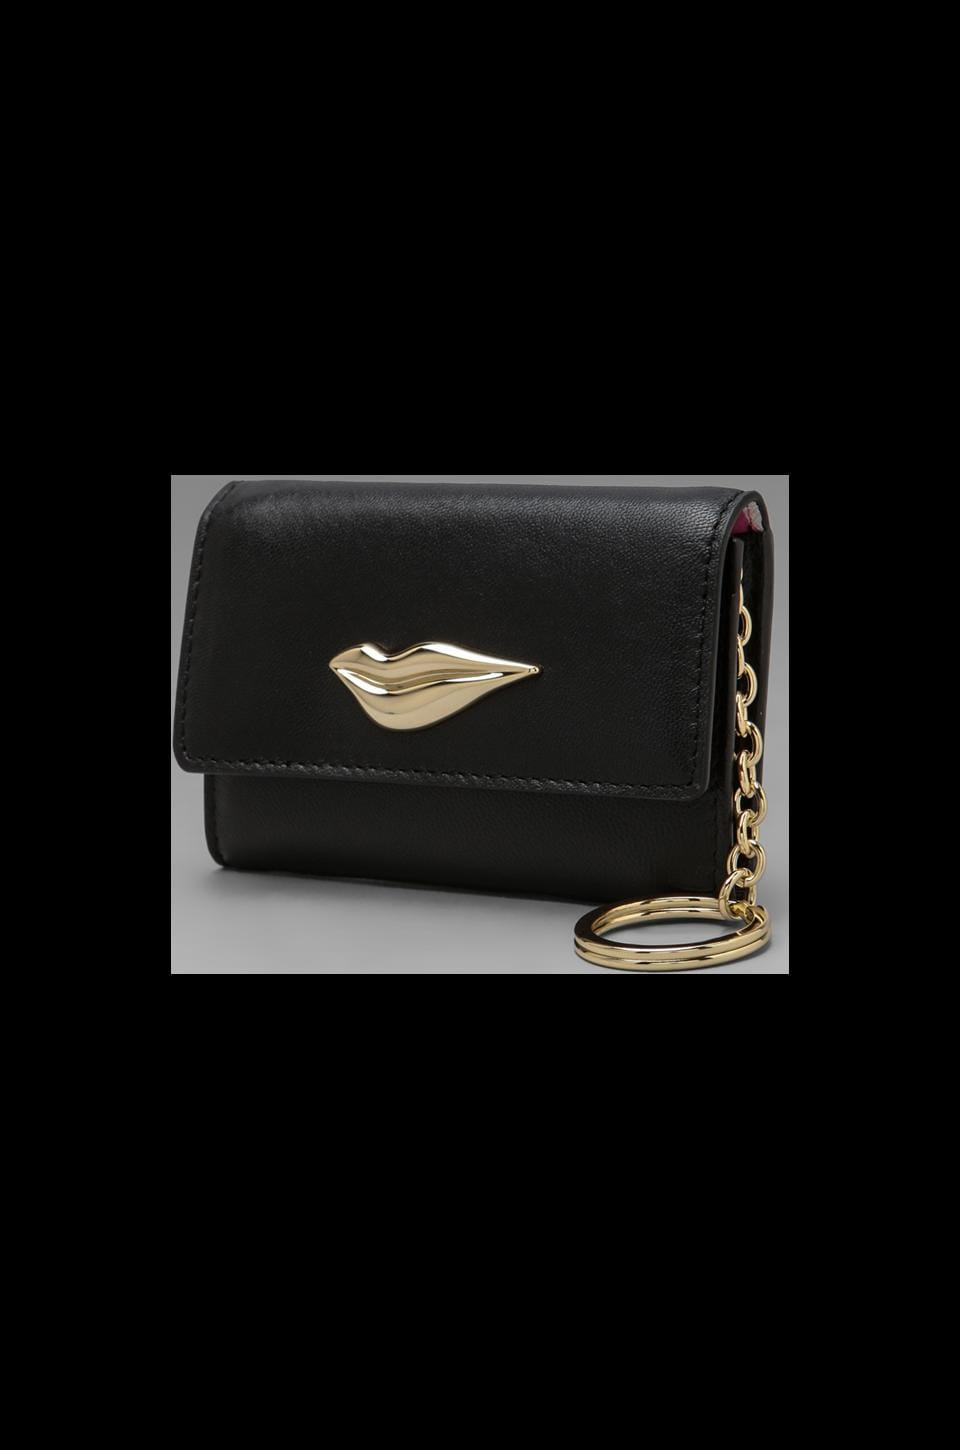 Diane von Furstenberg Lips Card Case in Black